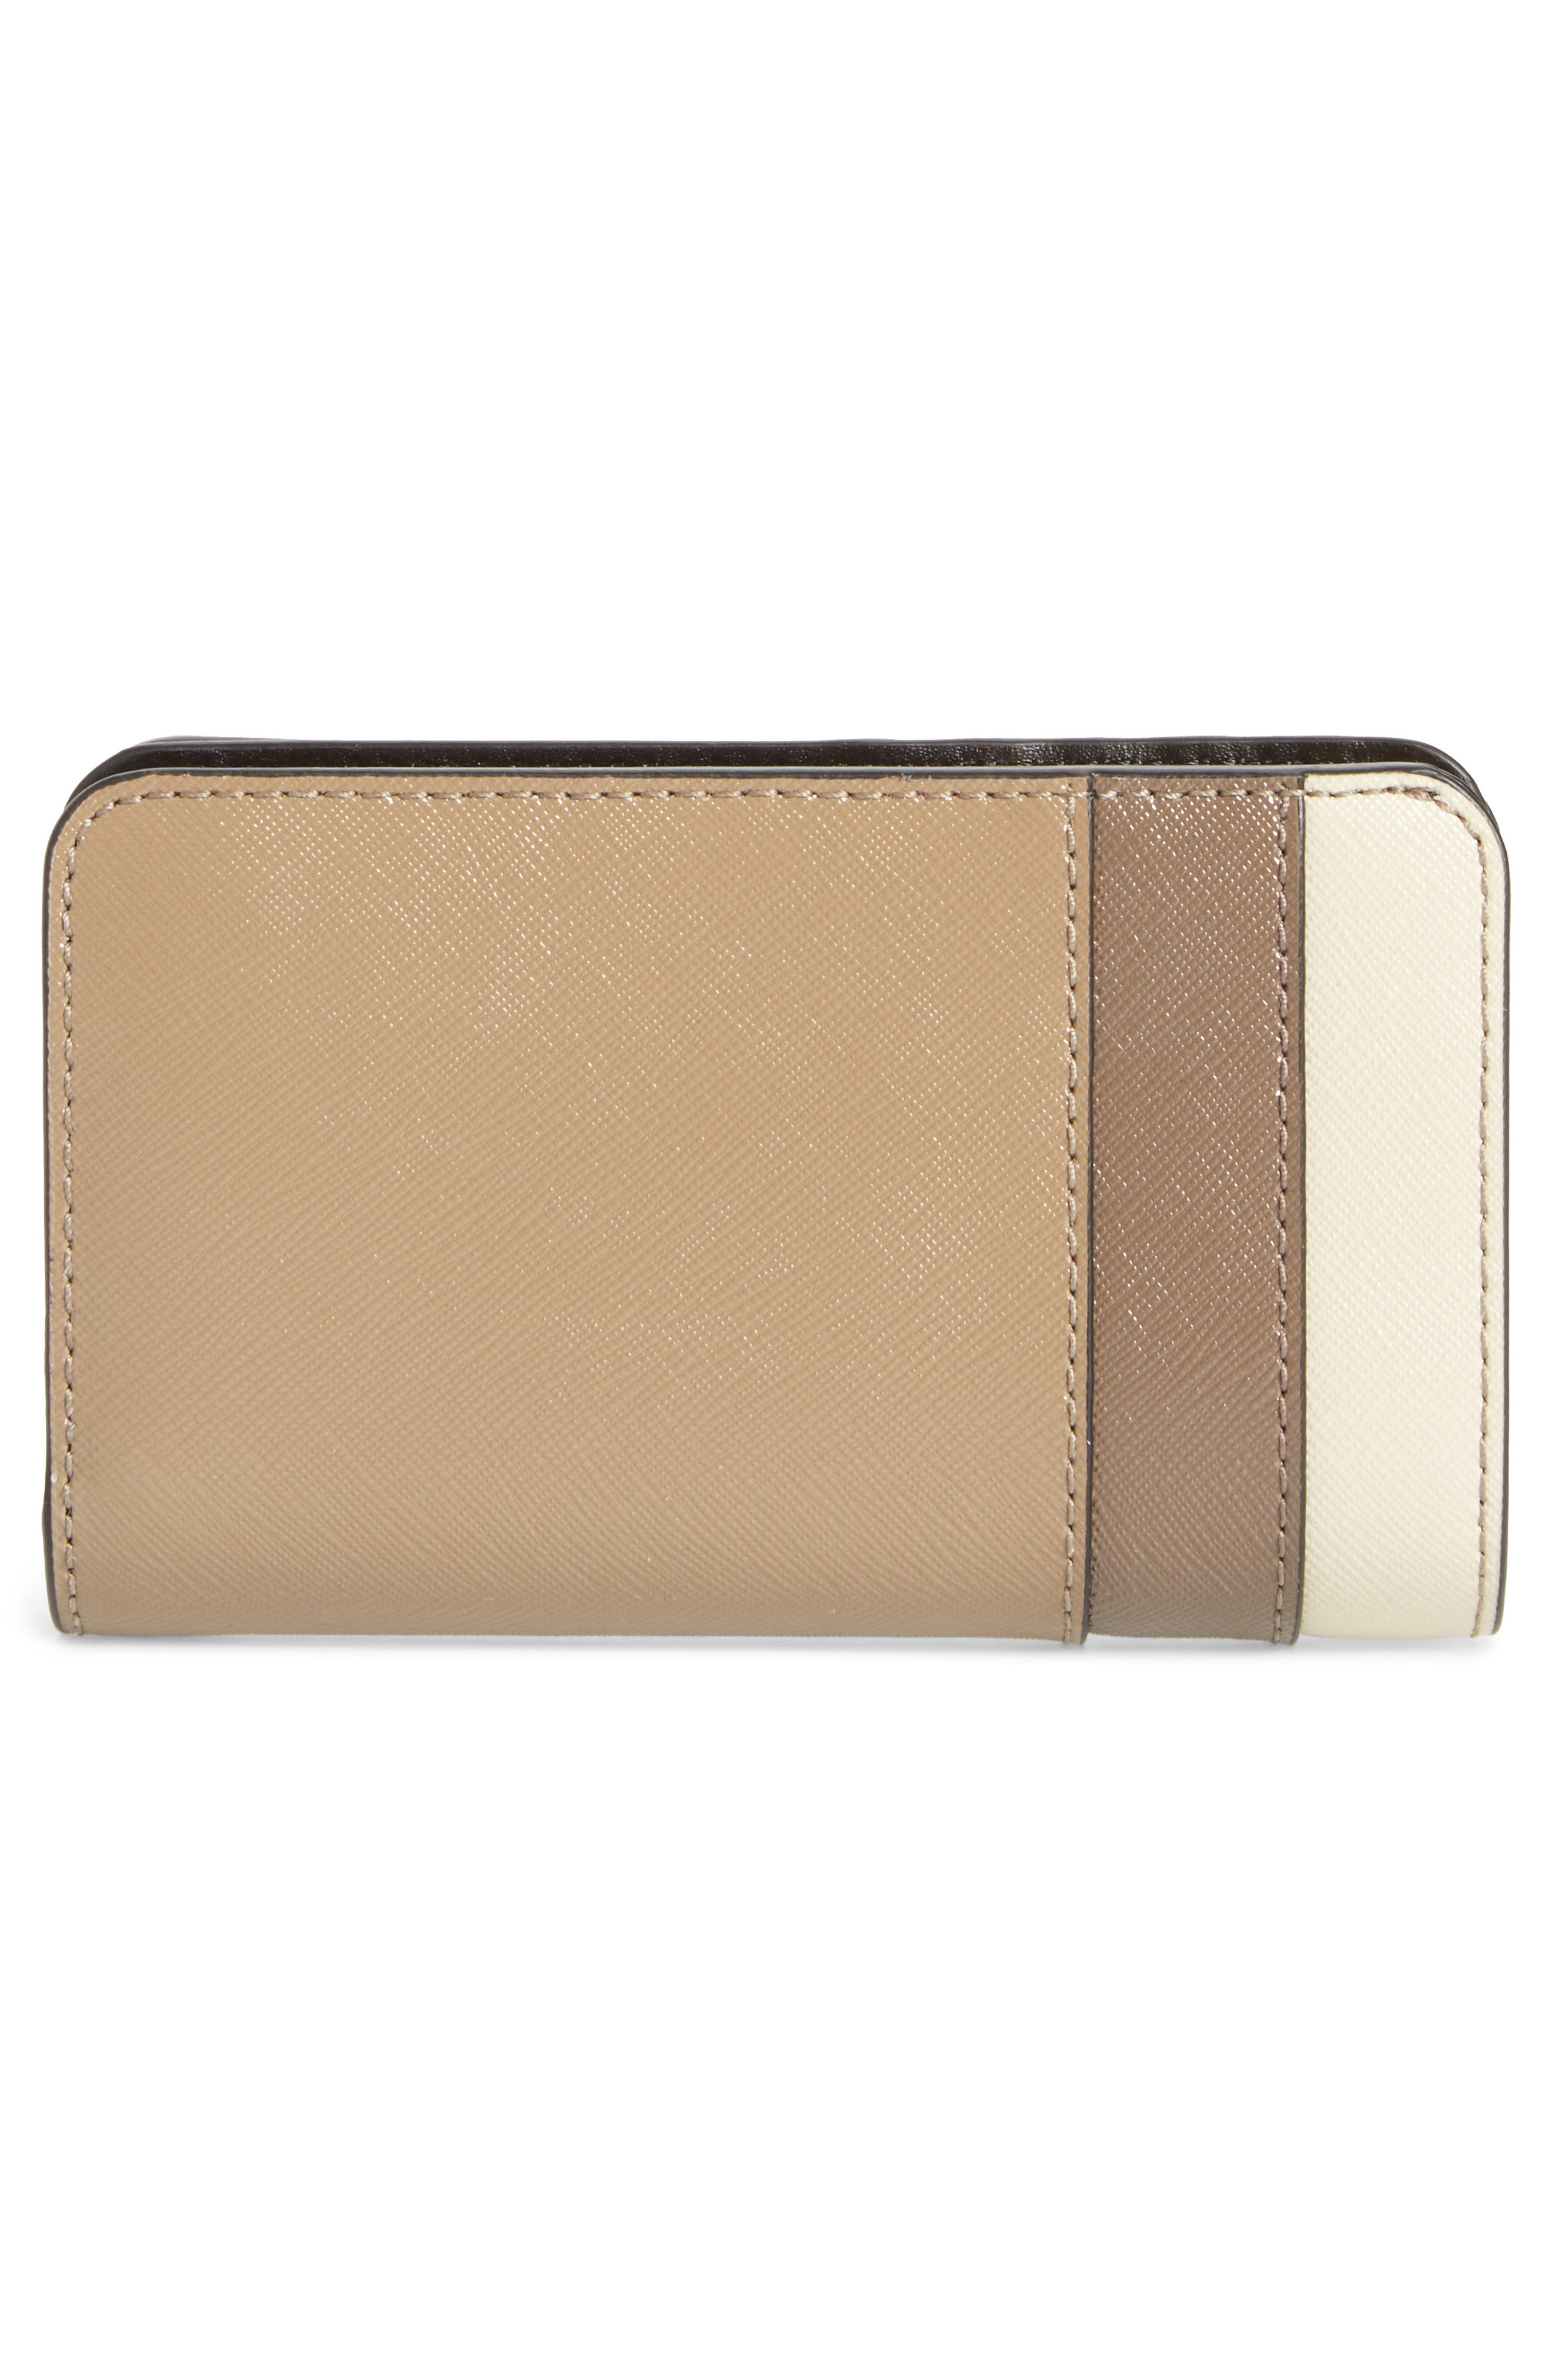 Saffiano Leather Compact Wallet,                             Alternate thumbnail 6, color,